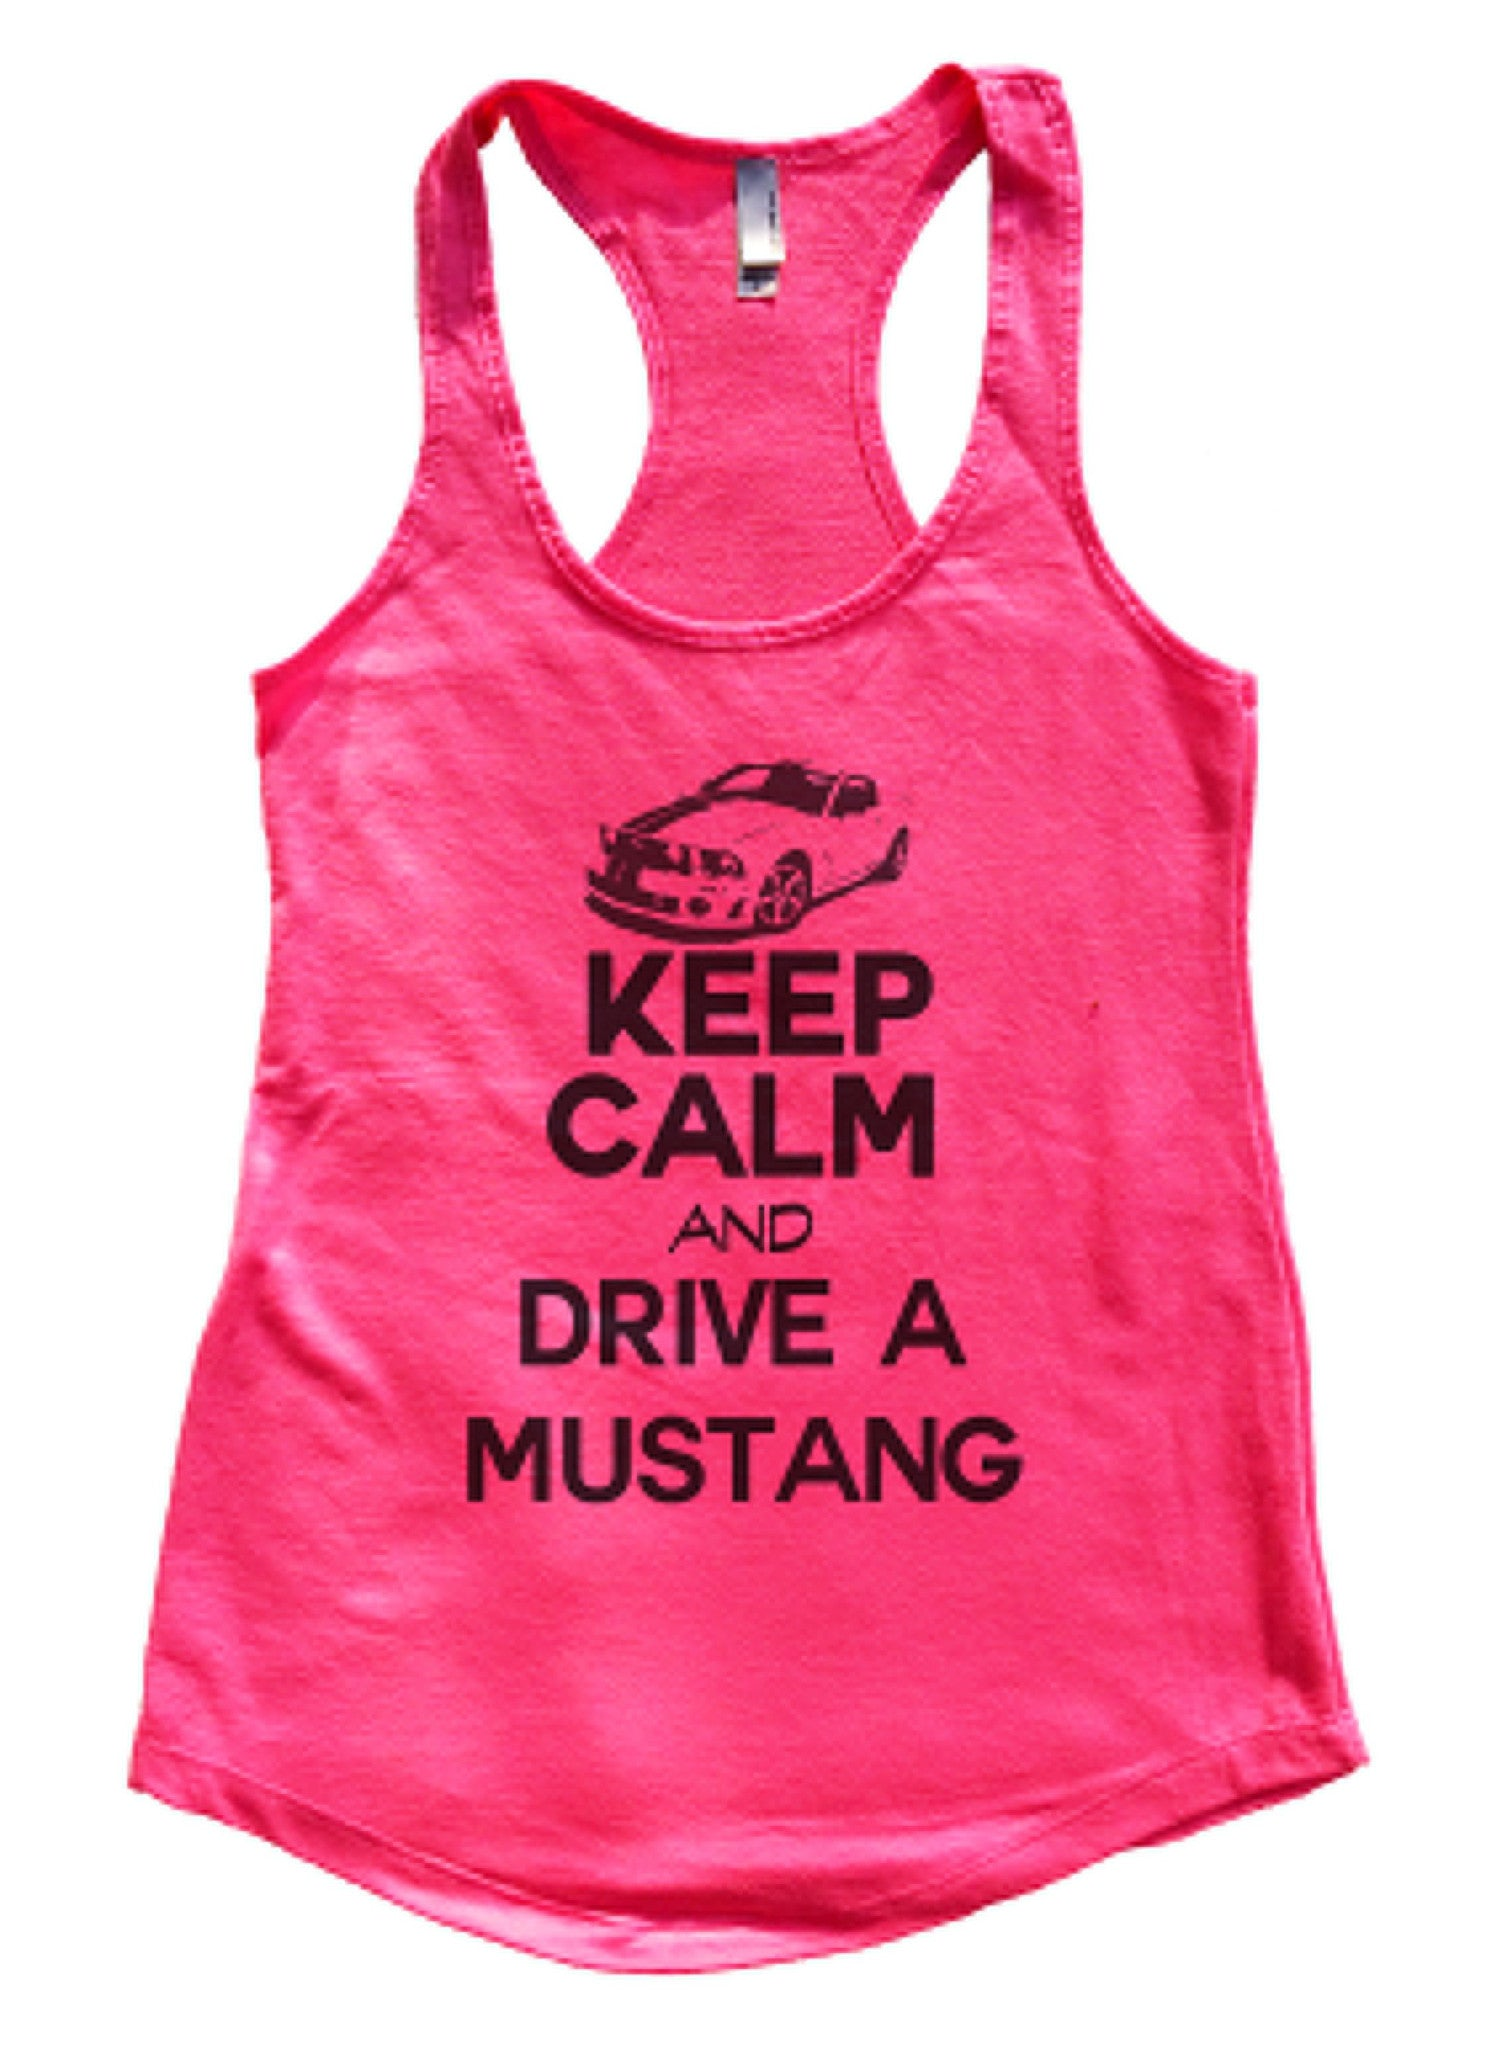 Keep Calm And Drive A Mustang Womens Workout Tank Top 2119 - Funny Shirts Tank Tops Burnouts and Triblends  - 4